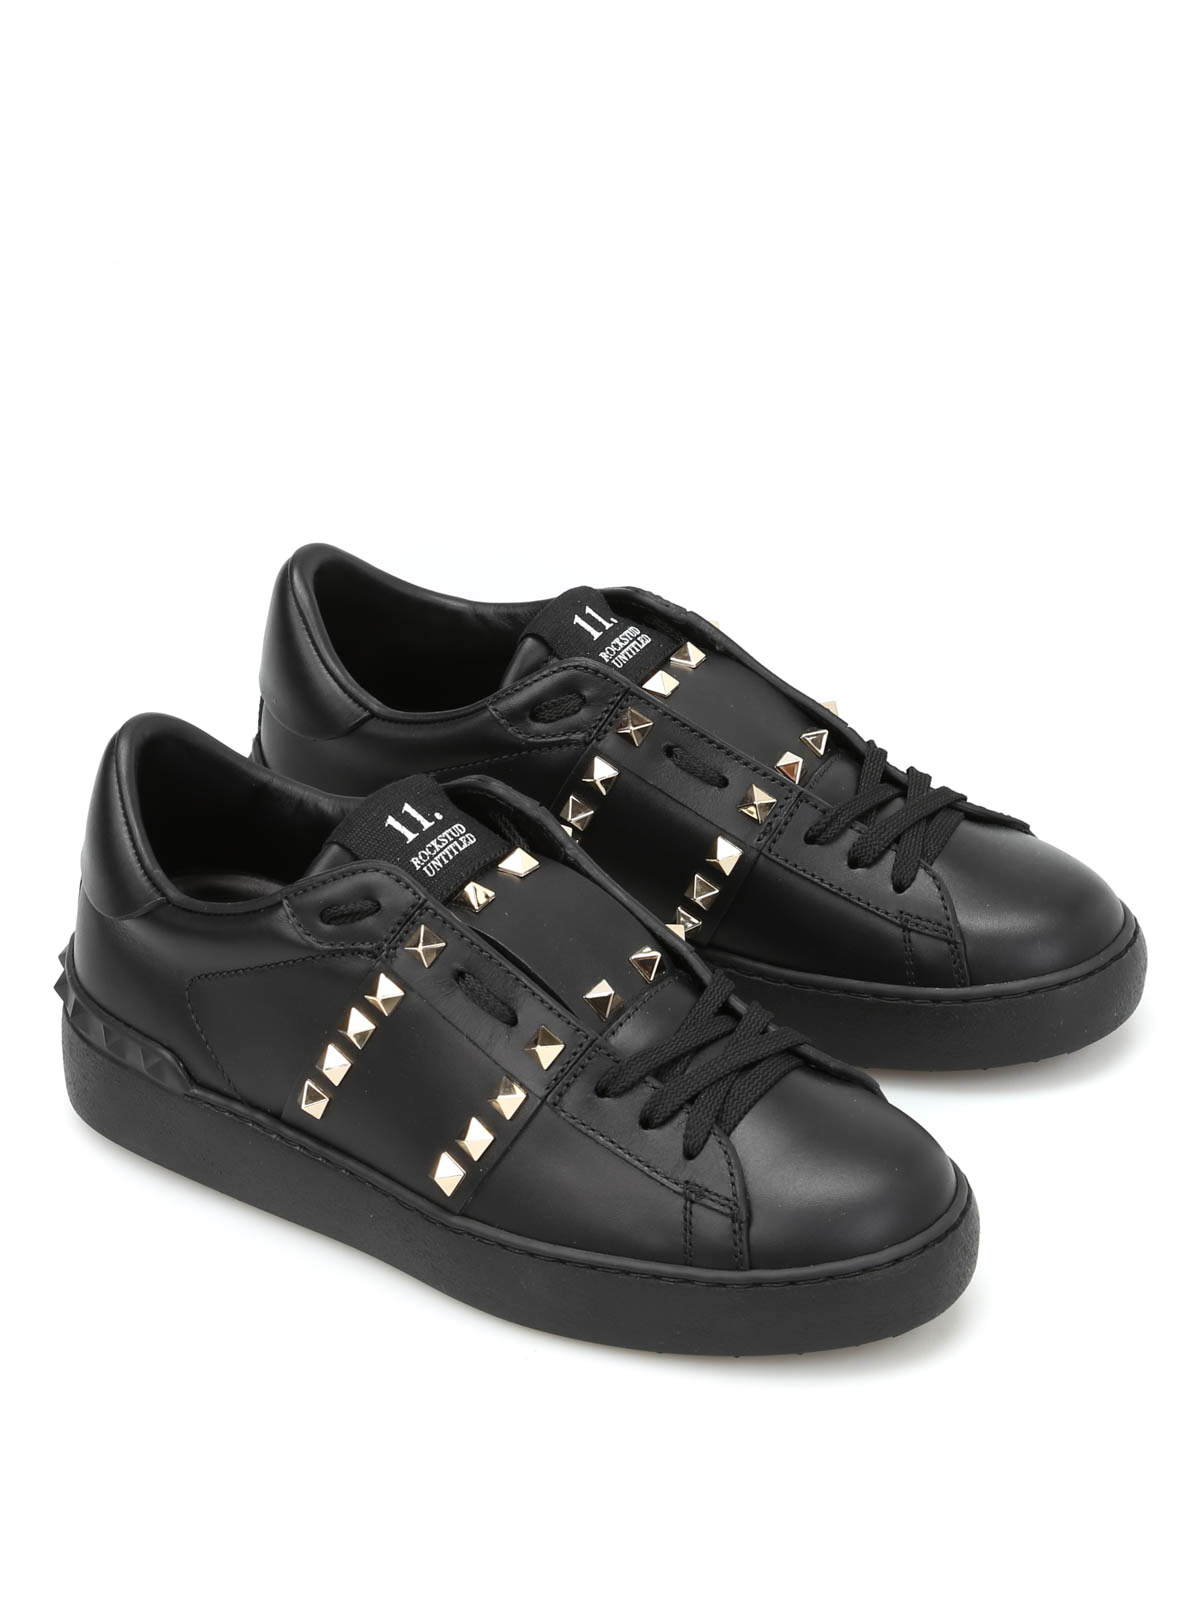 Shoes Italy Online Shop